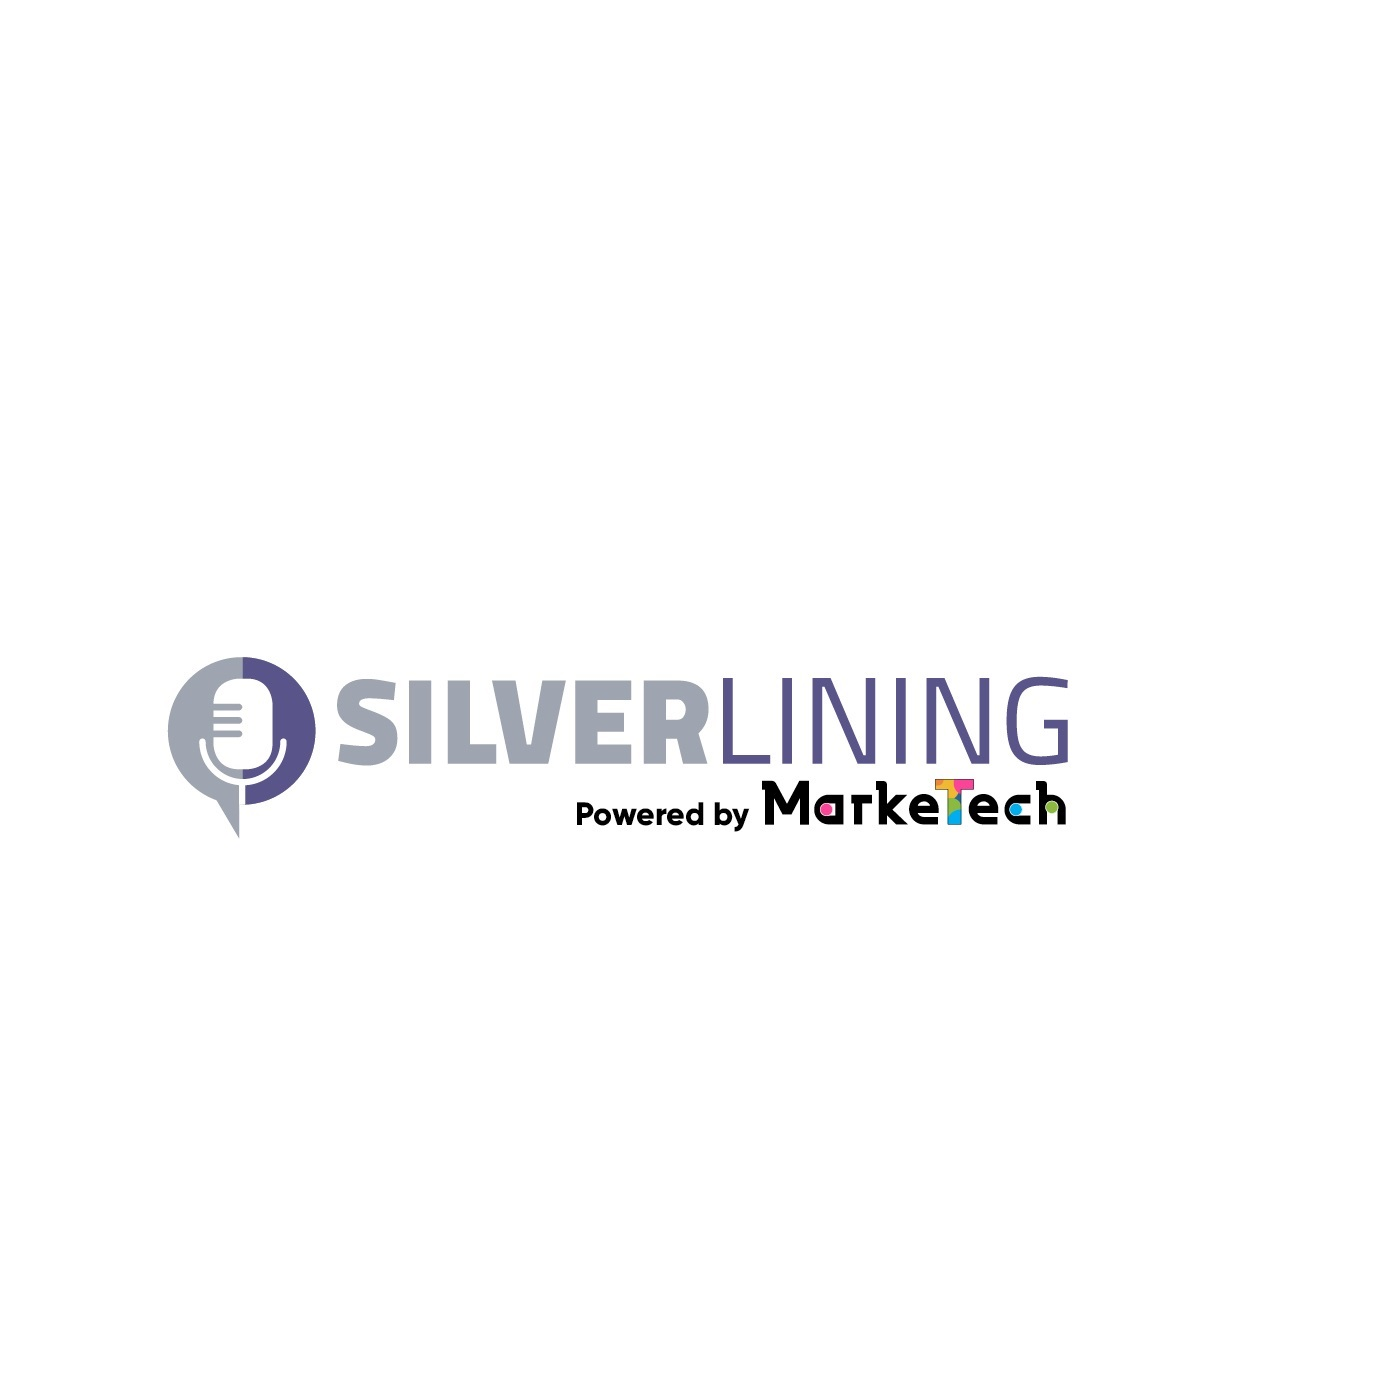 SilverLining Podcast Episode 27: Protecting Your Cloud Data With Legal Controls